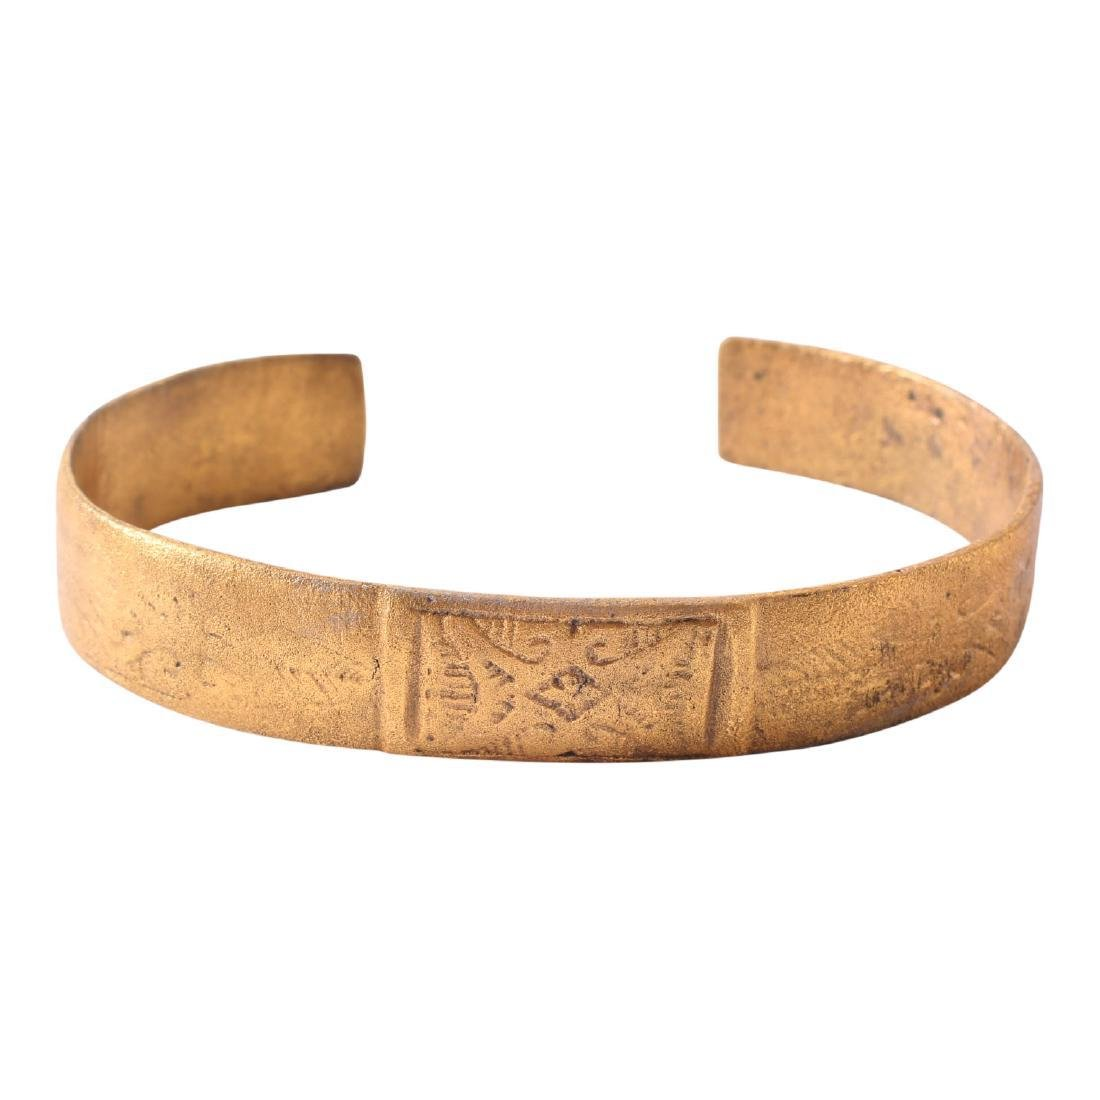 Viking Bracelet 10th C